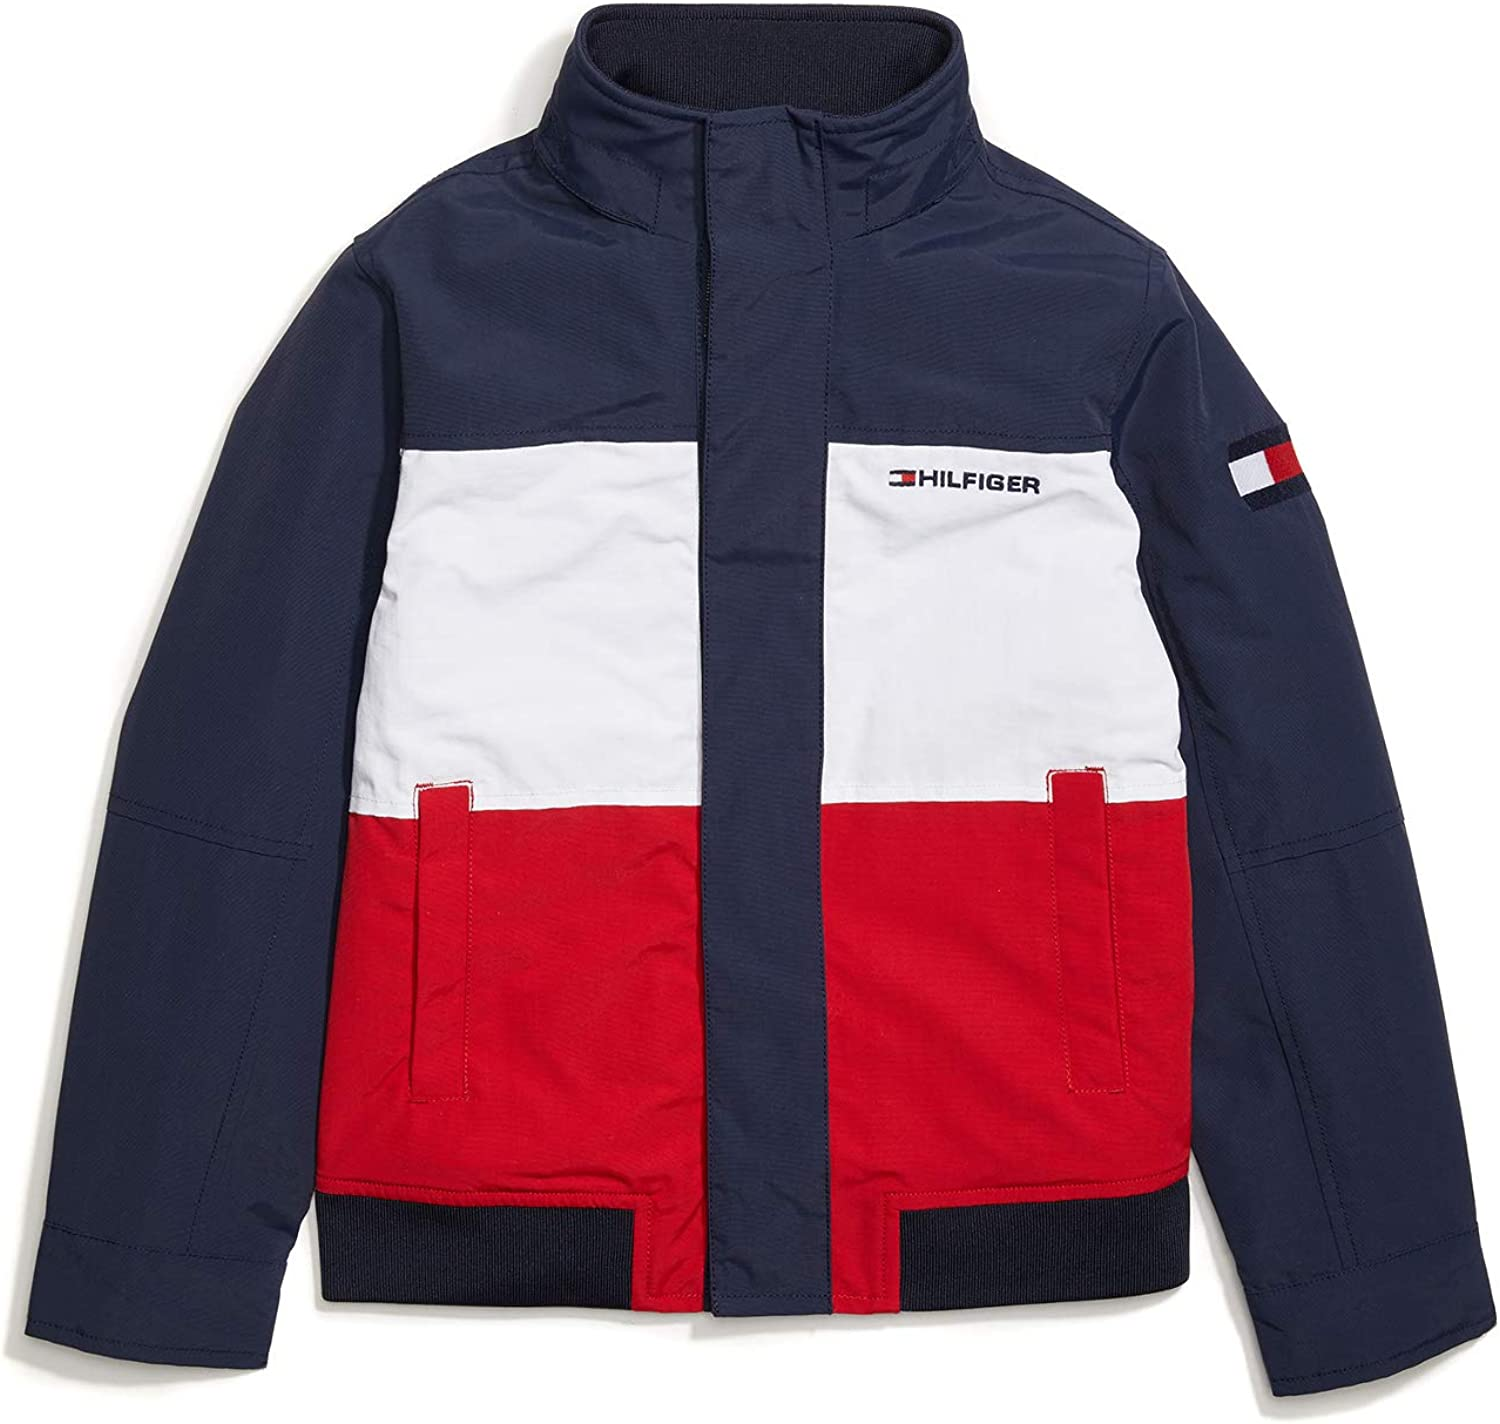 Tommy Hilfiger Boys' Adaptive Yacht Large-scale sale Today's only Buttons Magnetic Jacket with